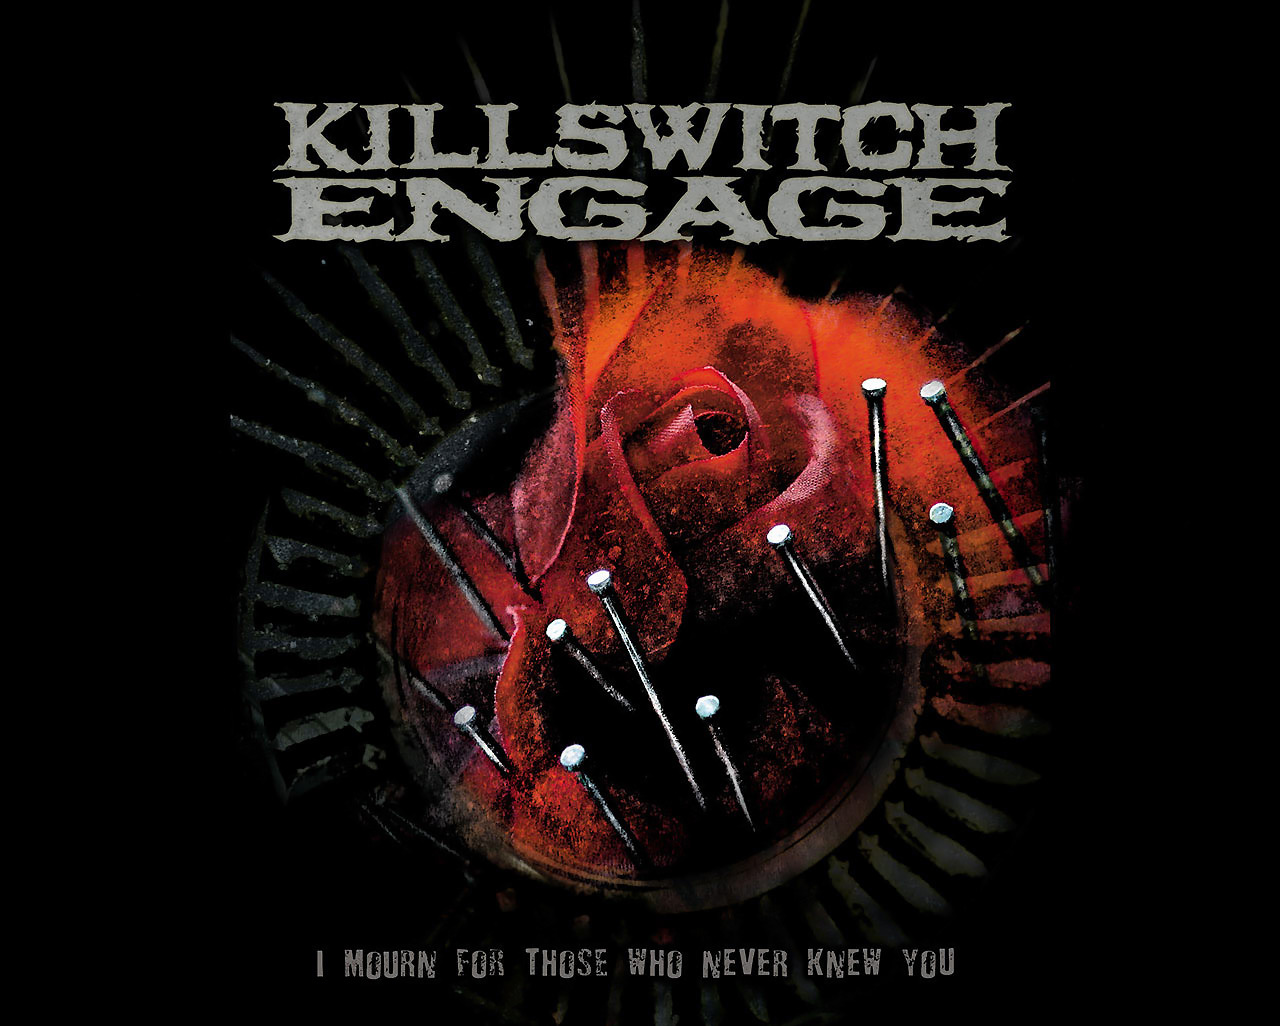 killswitch engage copy FTW